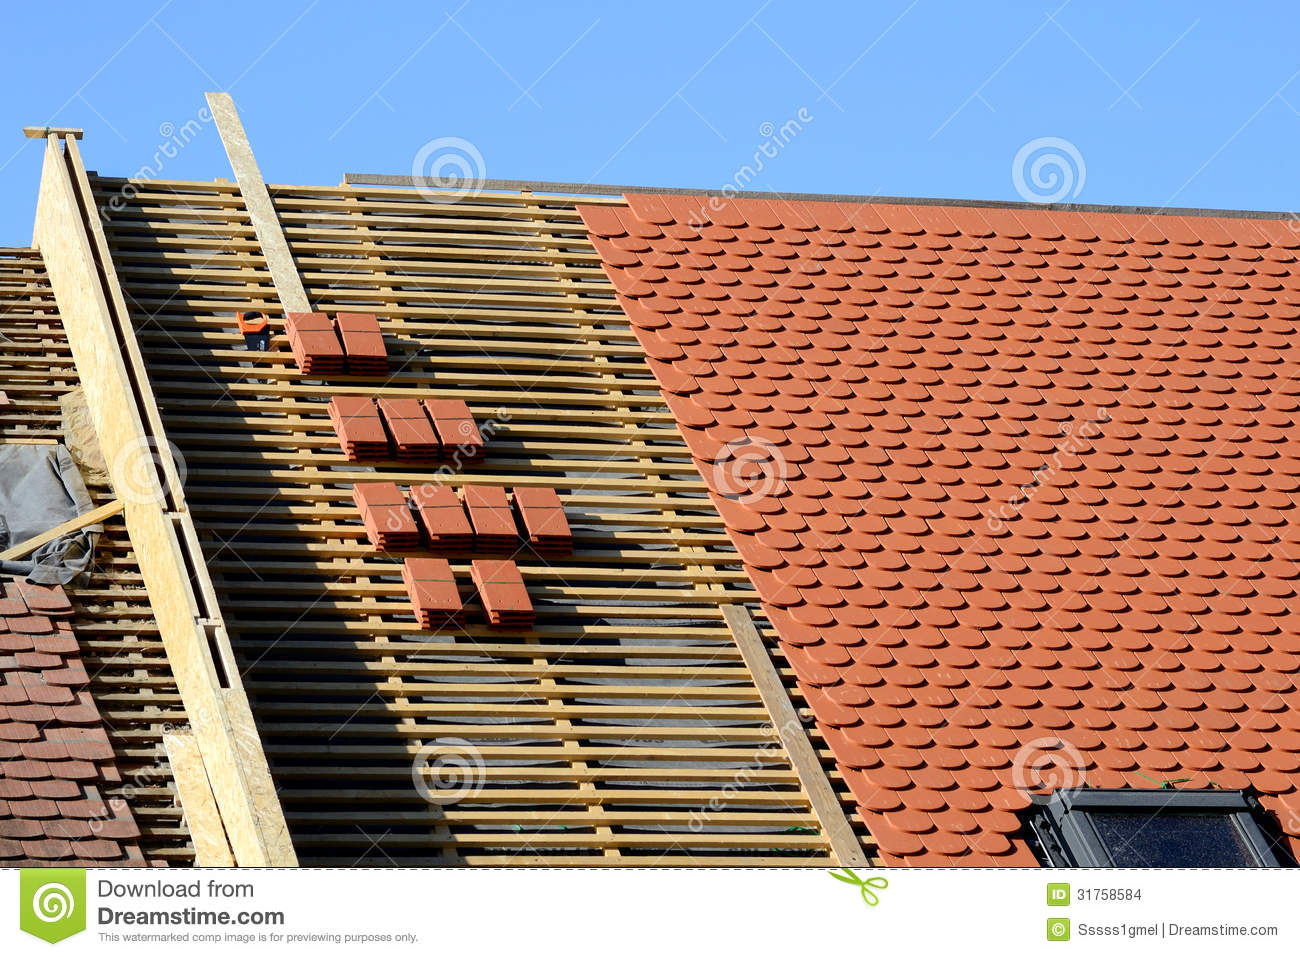 A Roof Under Construction With Stacks Of Roof Tiles Stock